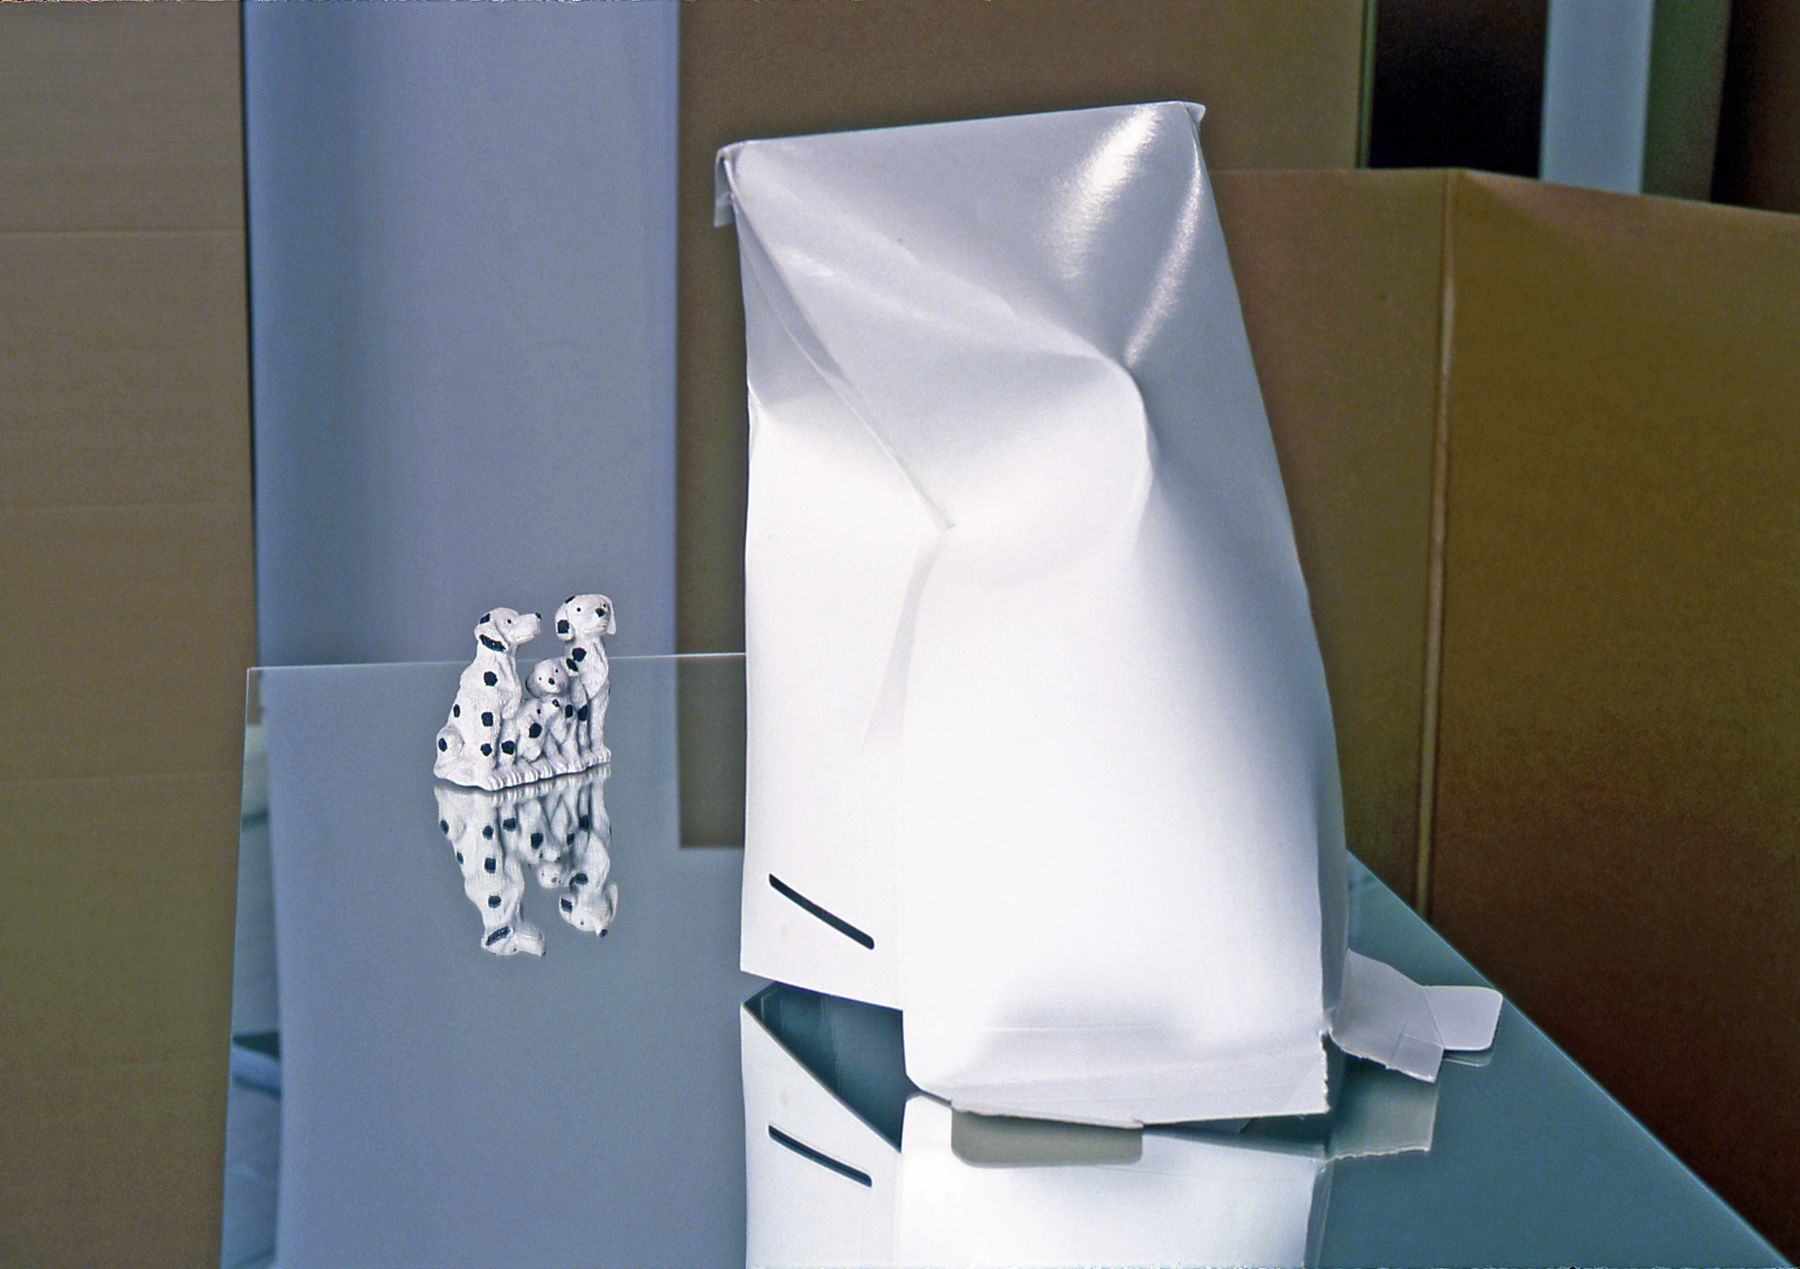 Untitled, 2001, Mirror pedestal, Dalmatians, gallery envelope, and artist tape, 54 x 32 x 18 inches